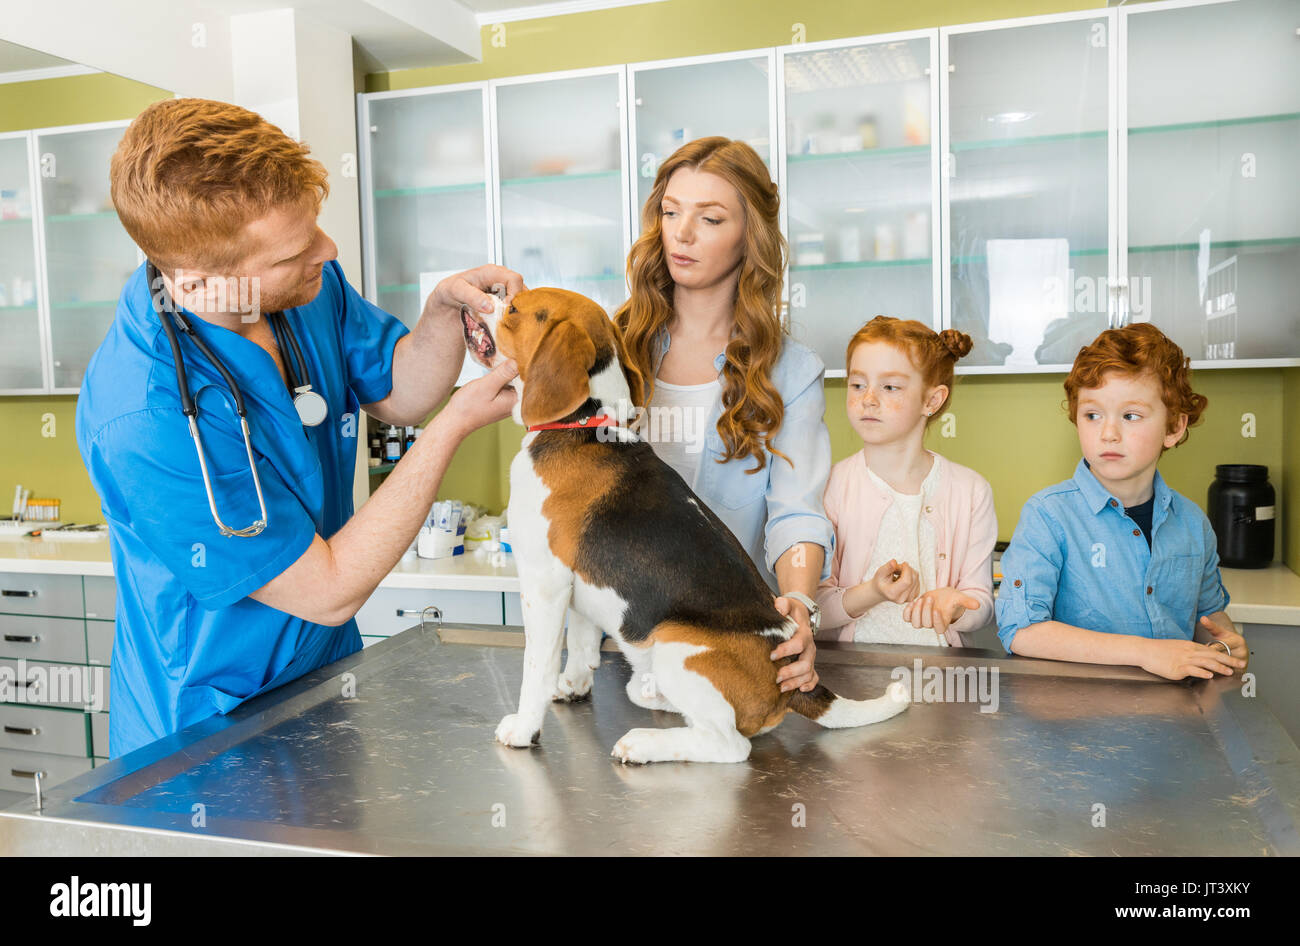 Veterinary examining Beagle dog at clinic, pet owners standing near - Stock Image